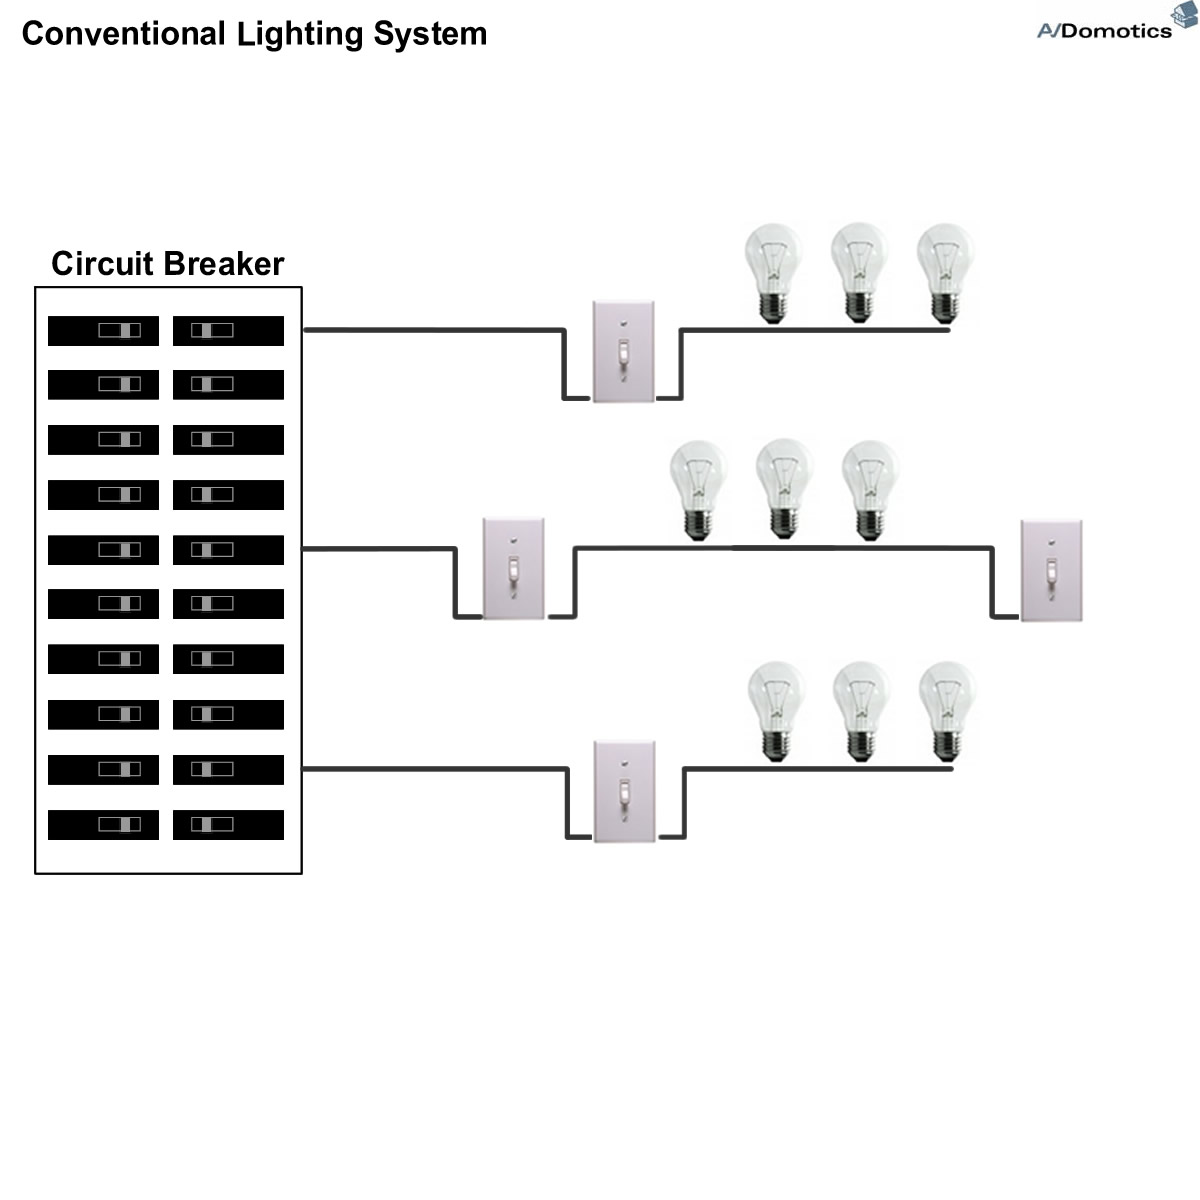 ConventionalLightingDiagram avdomotics smart home technology smart home wiring diagram pdf at nearapp.co